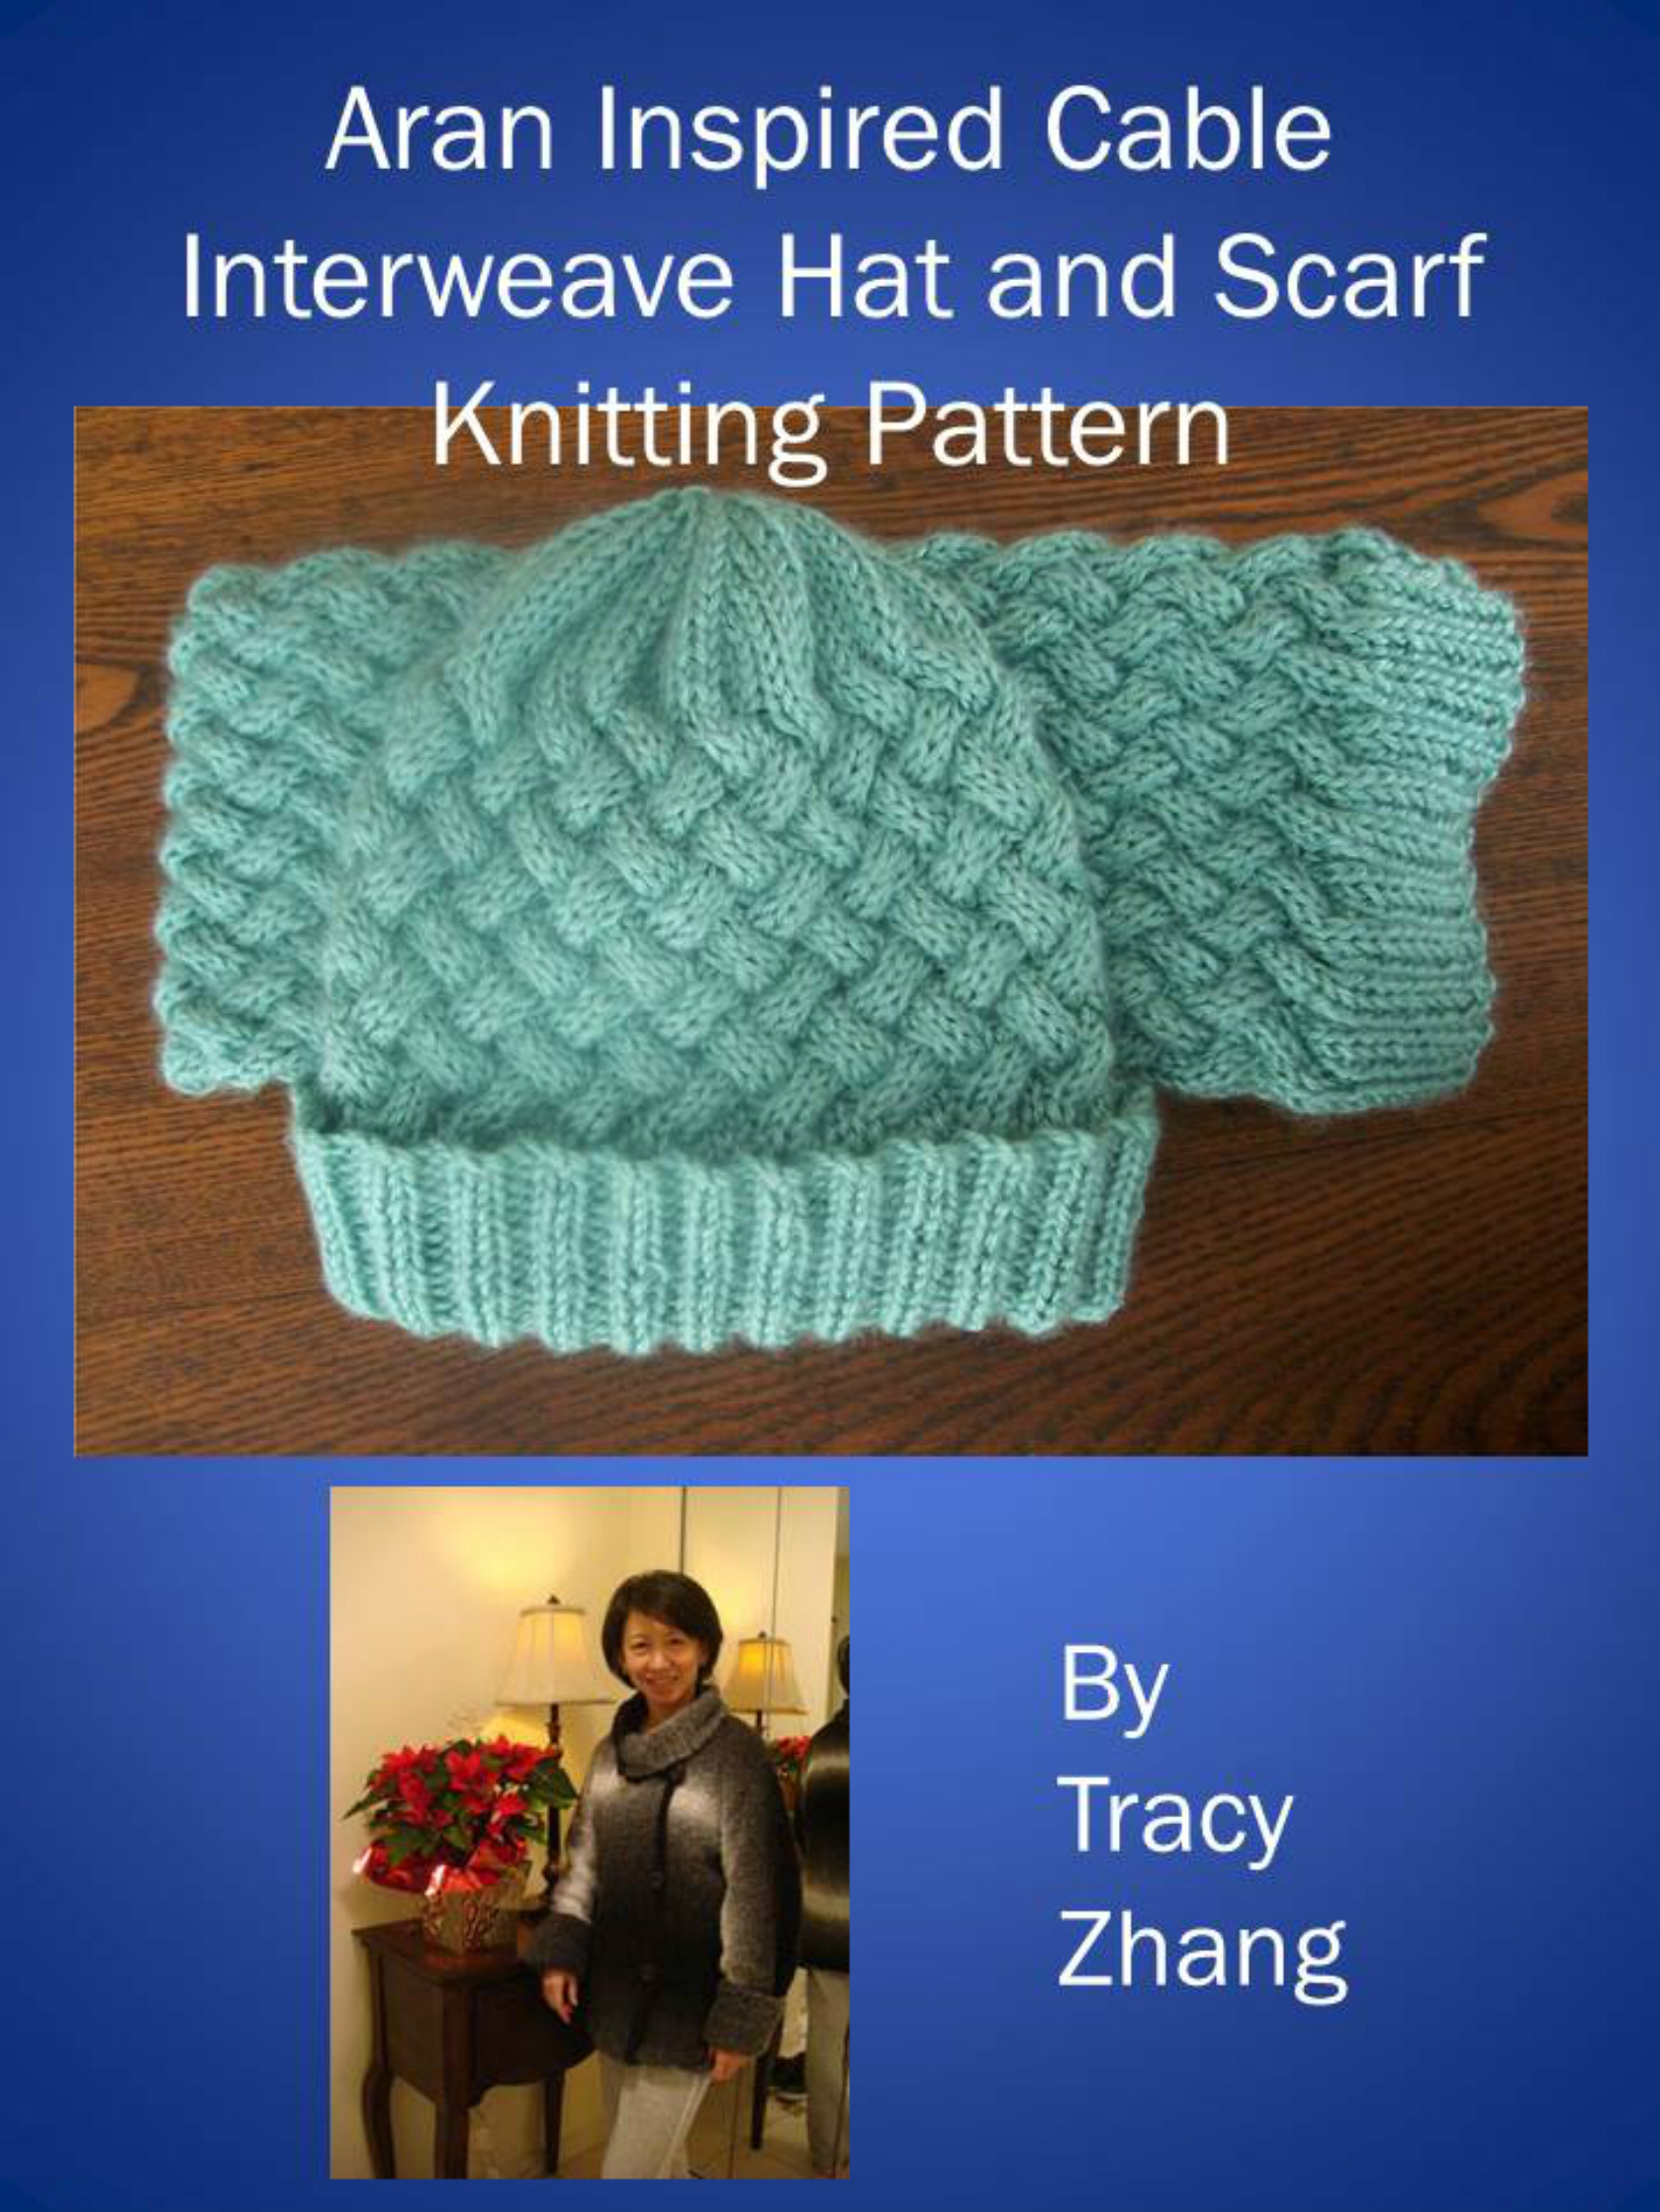 Smashwords Aran Inspired Cable Interweave Hat And Scarf Knitting